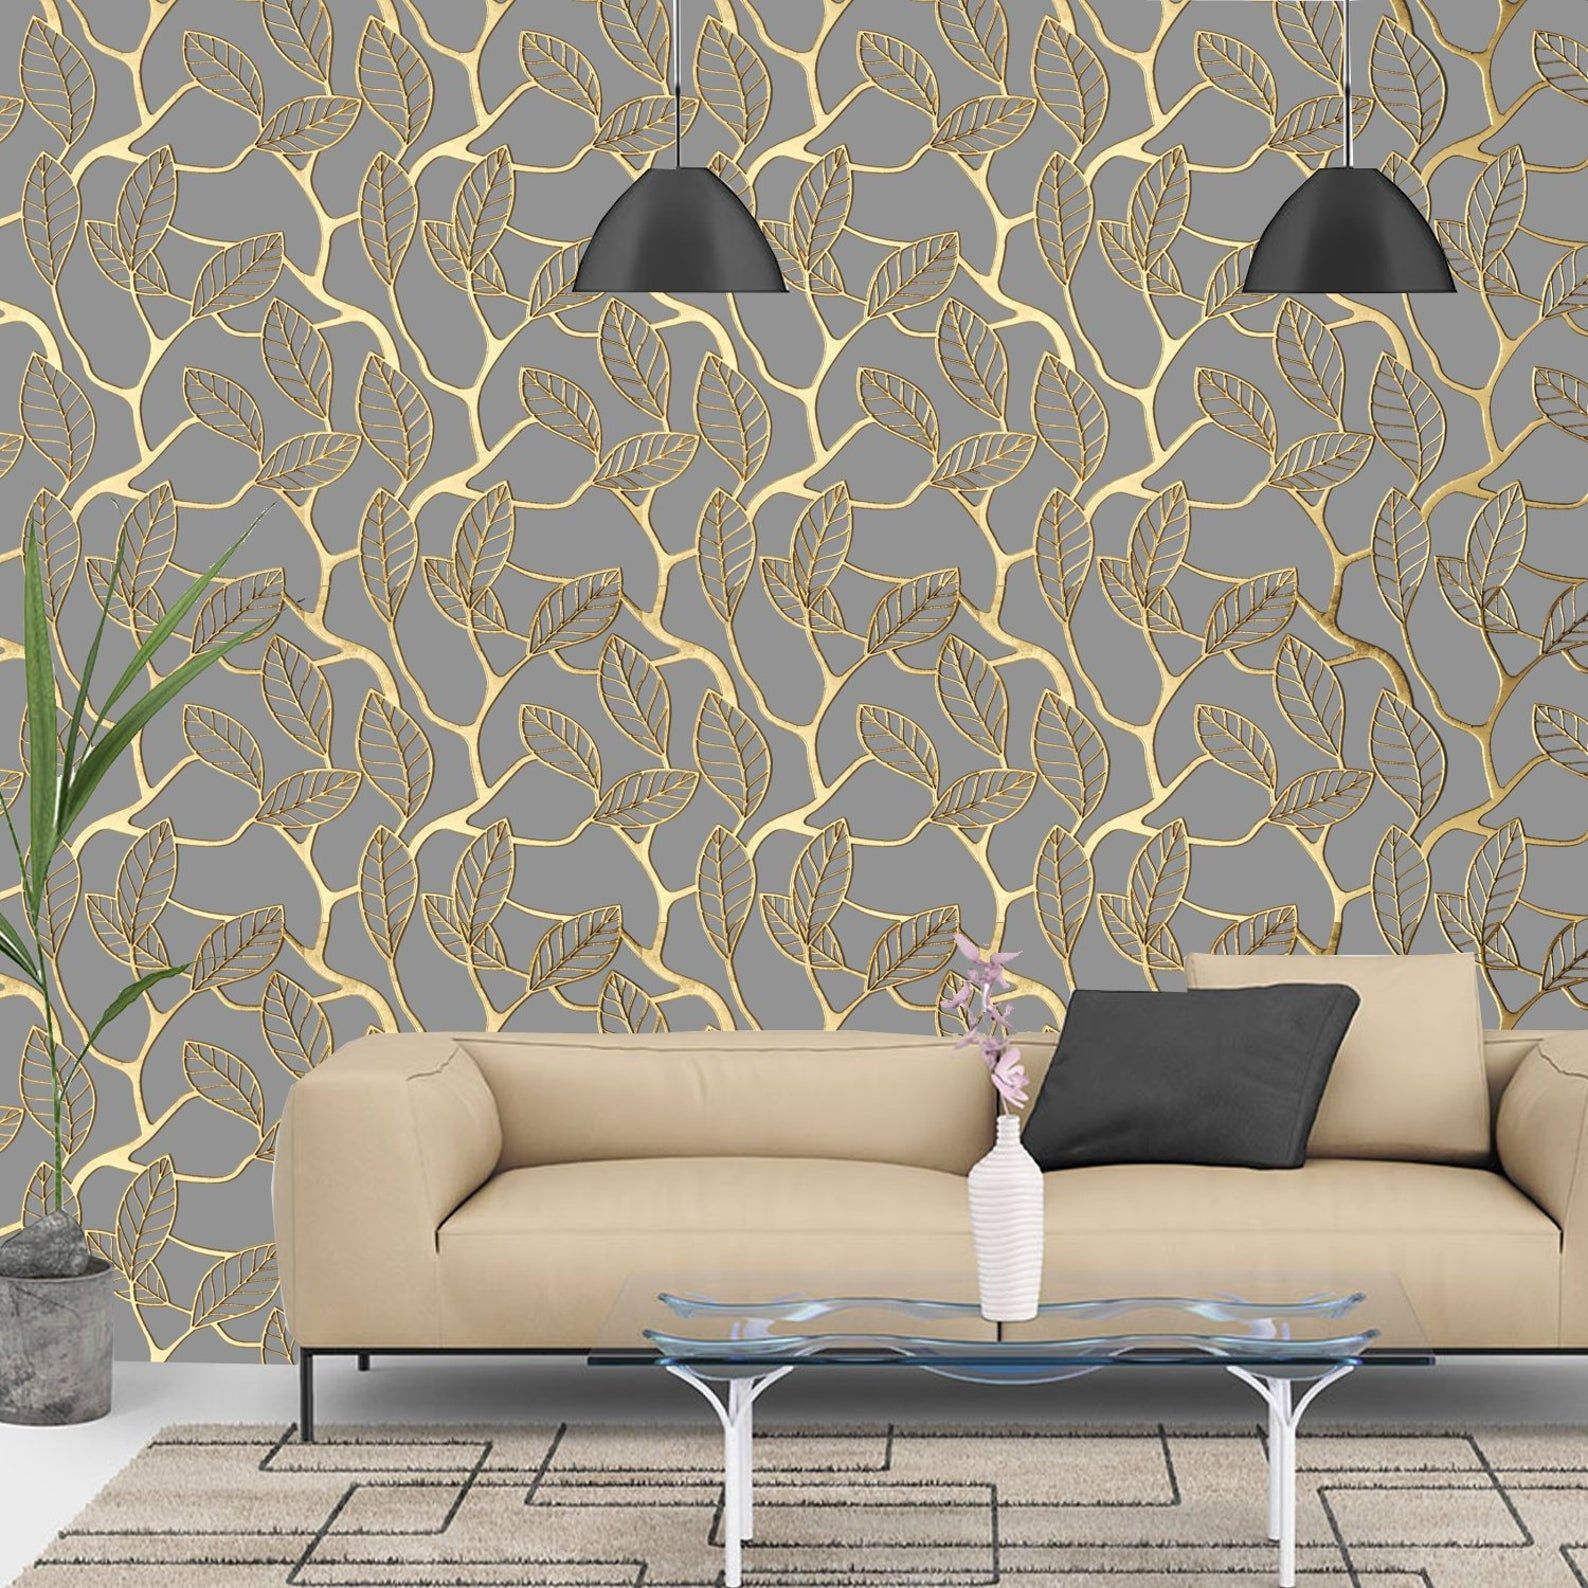 PrintMySpace Vintage Gold and Grey Lattice Wallpaper